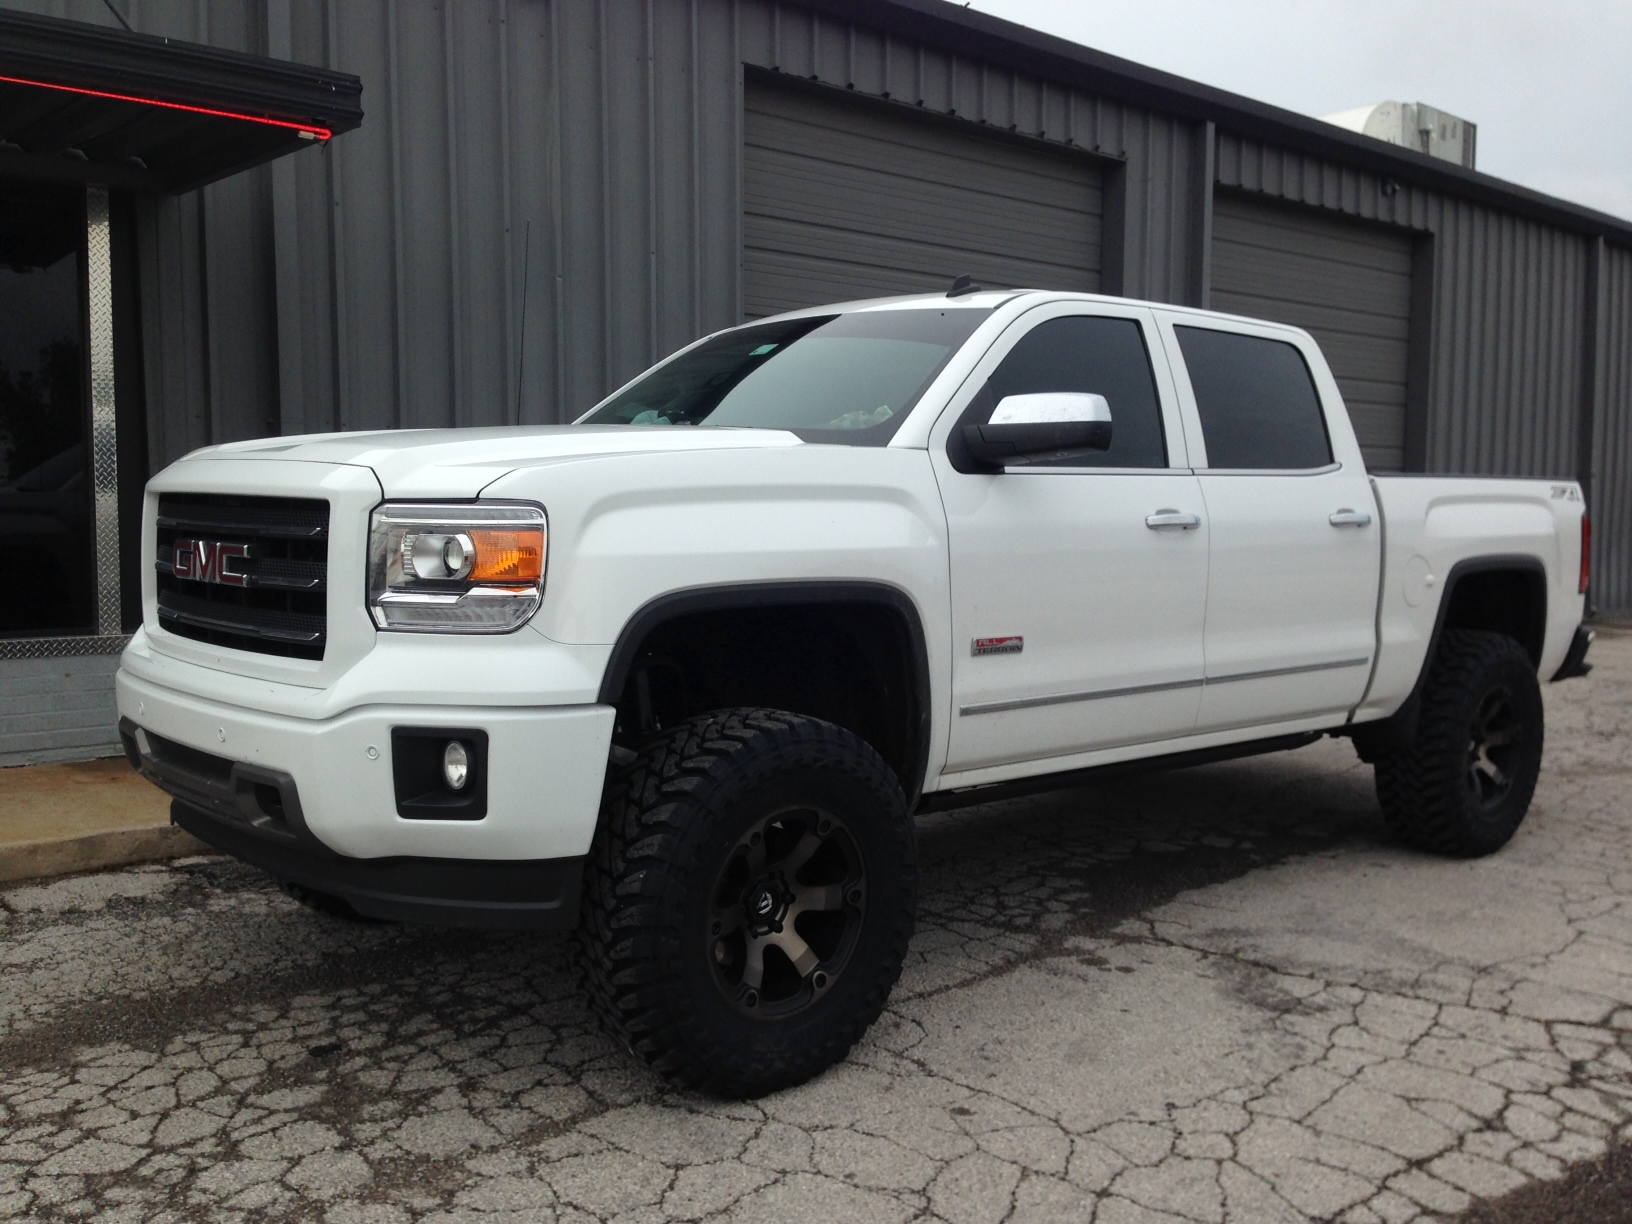 Lund Truck Bed Covers ... lift Fuel Beast Nitto – Performance Truck Outfitters Tulsa, OK